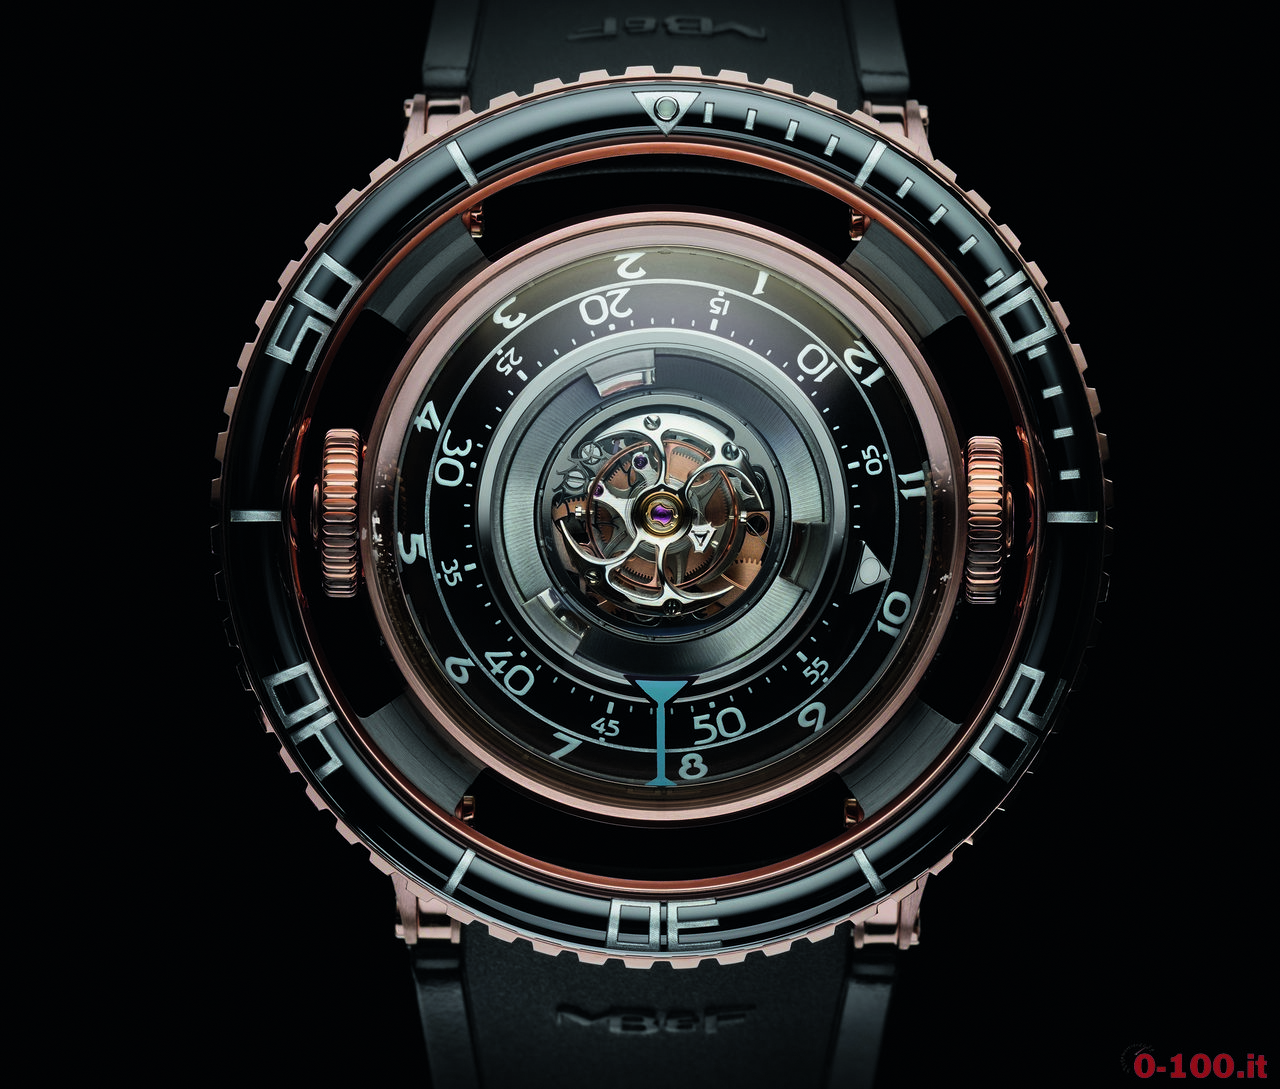 sihh-2017-mbf-horological-machine-n7-aquapod-hm7-aquapod-prezzo-price_0-1003